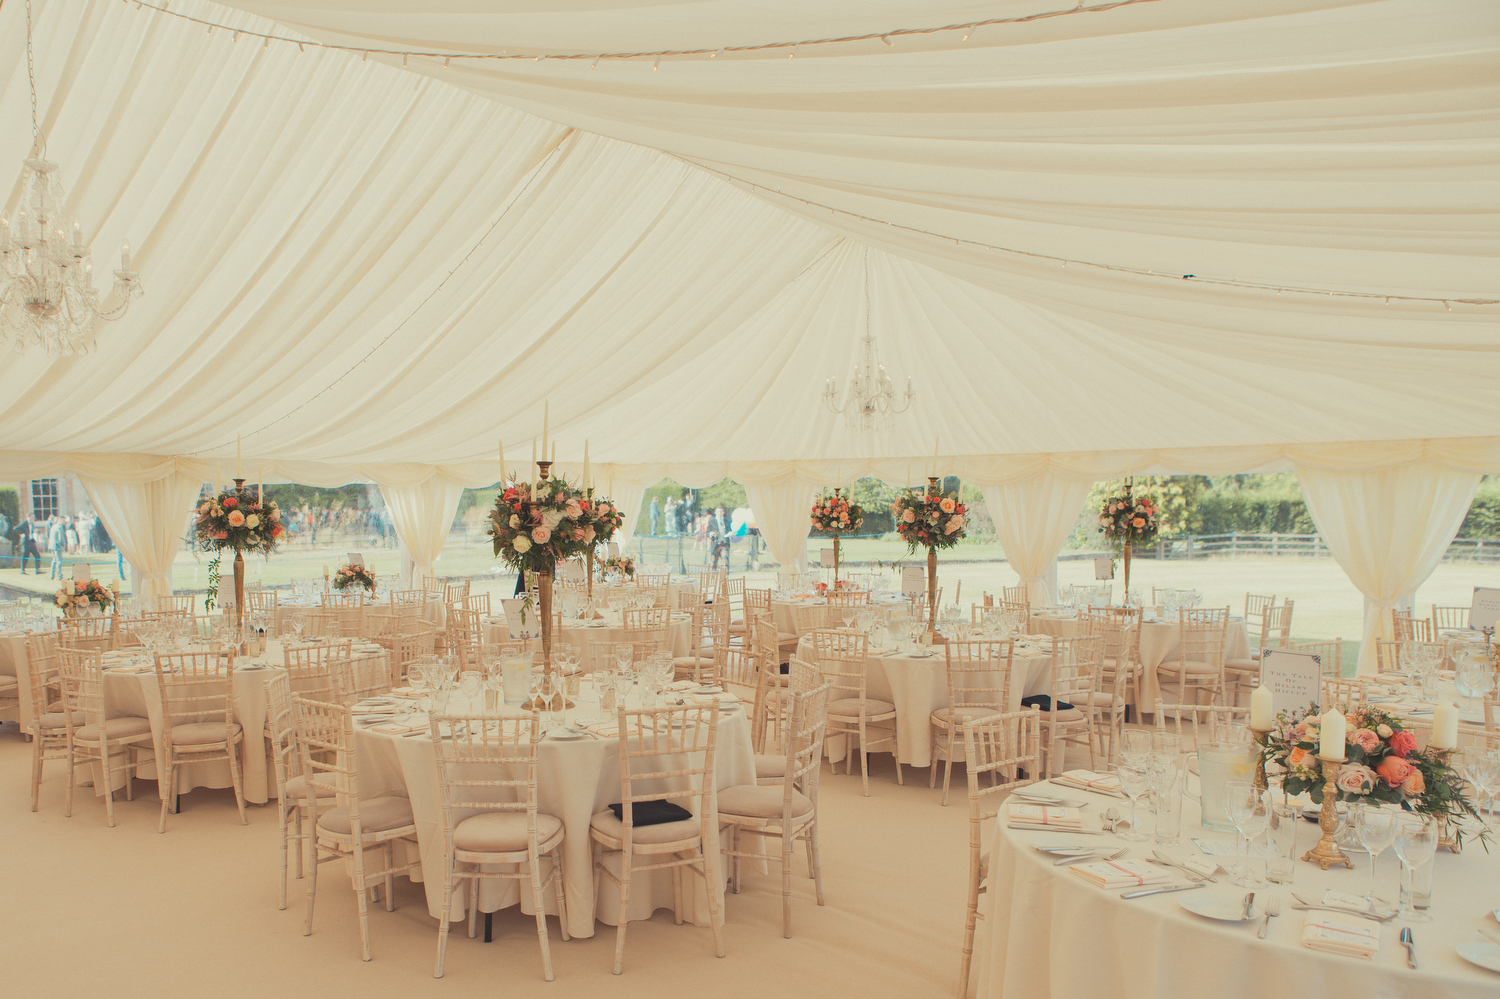 Marquee wedding at Courteenhall, Northamptonshirew